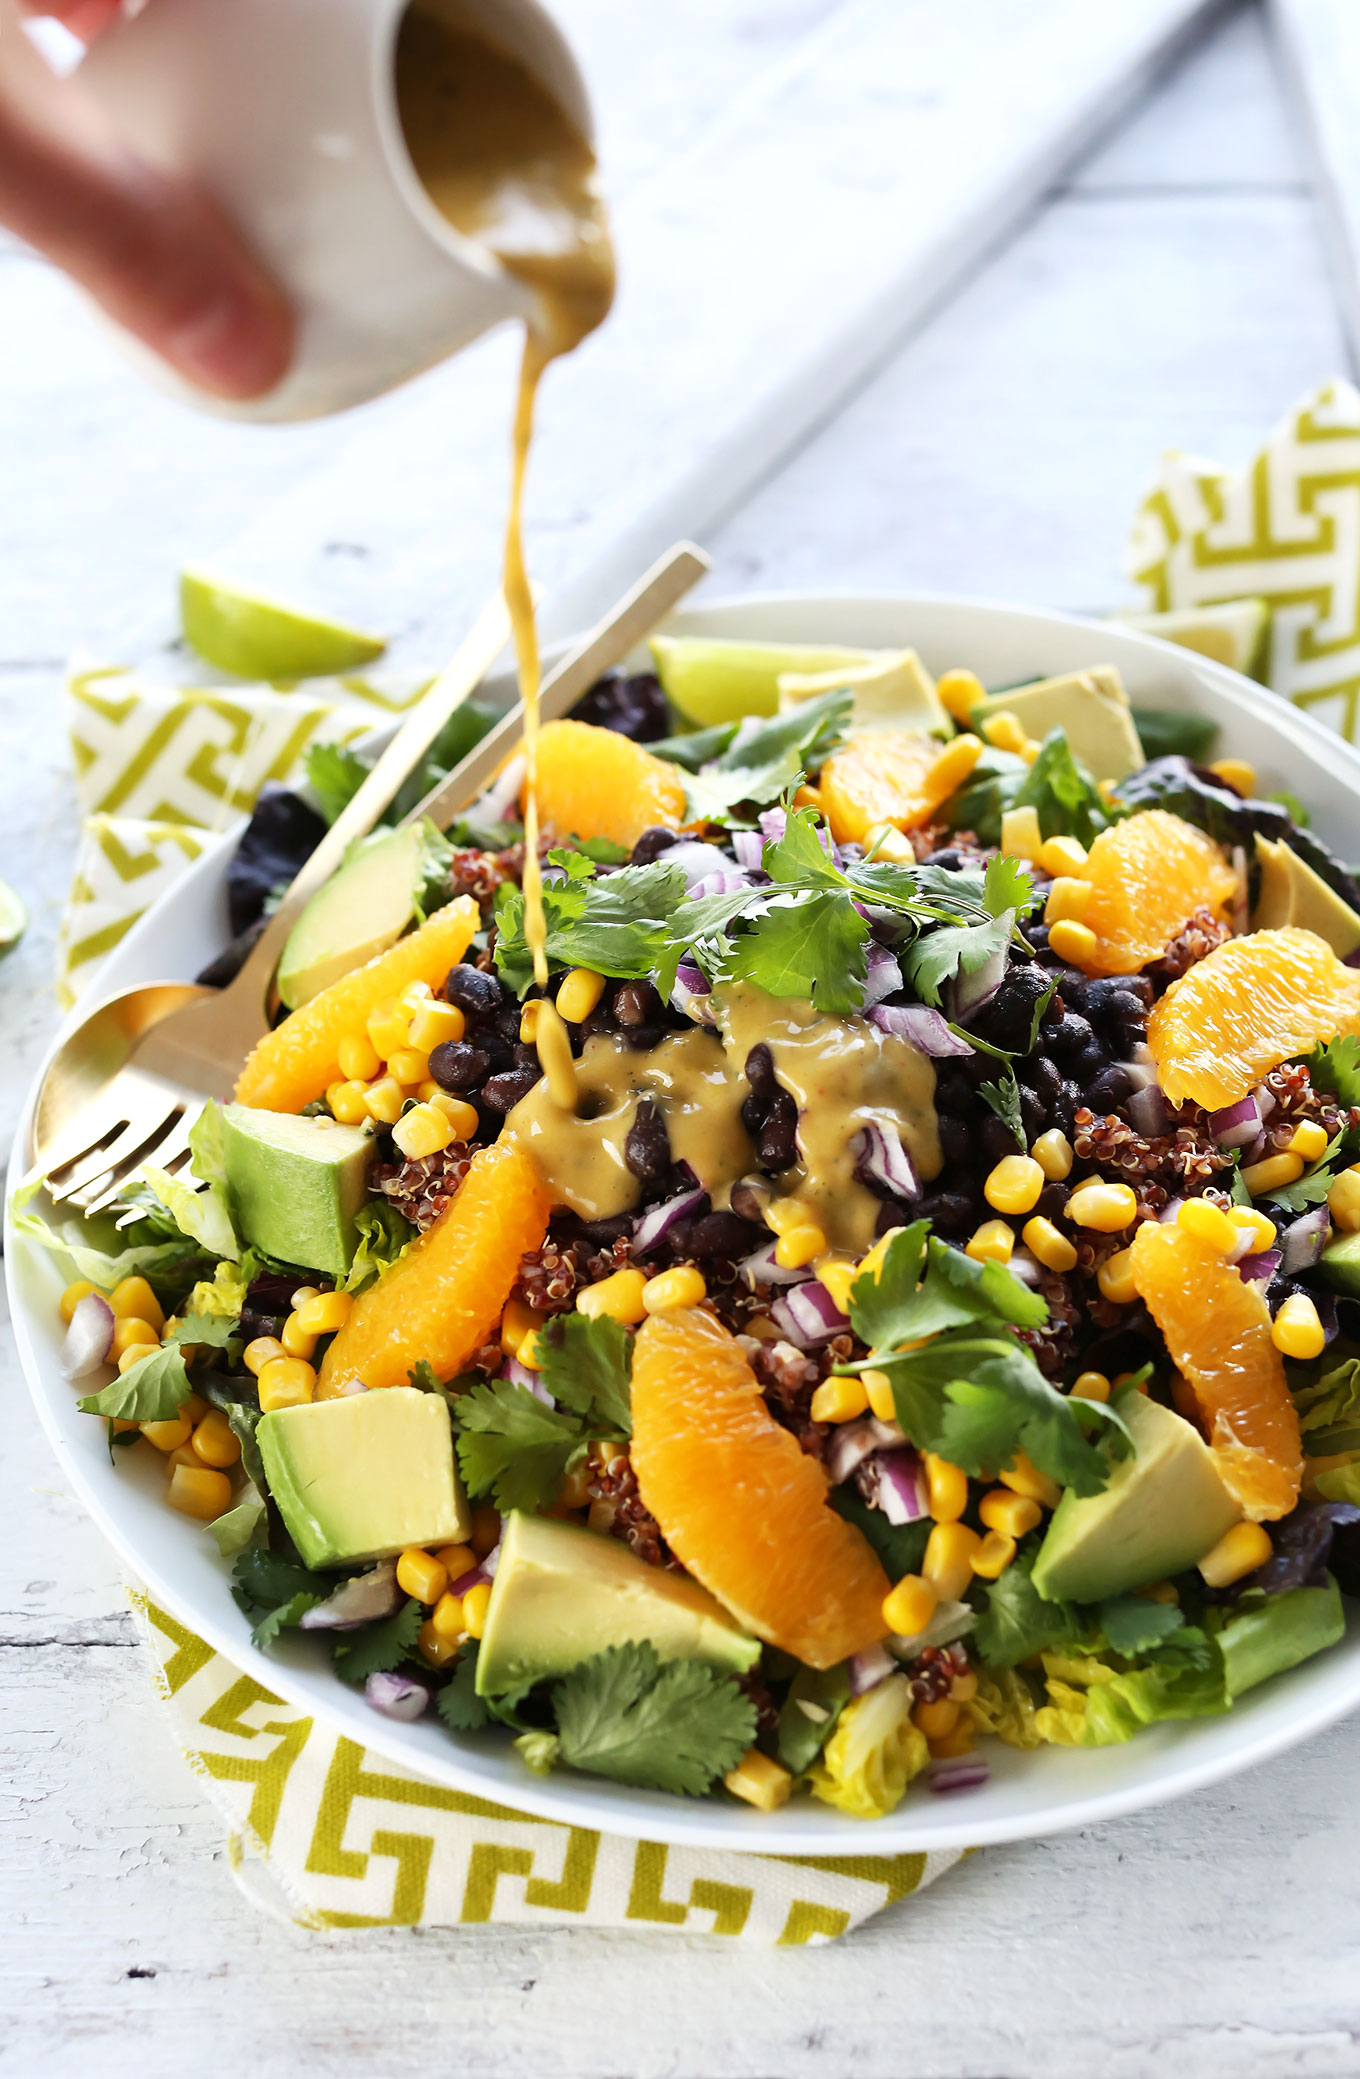 HEALTHY Vegan Mexican Quinoa Salad With Black Beans Corn Avocado And A Creamy Orange